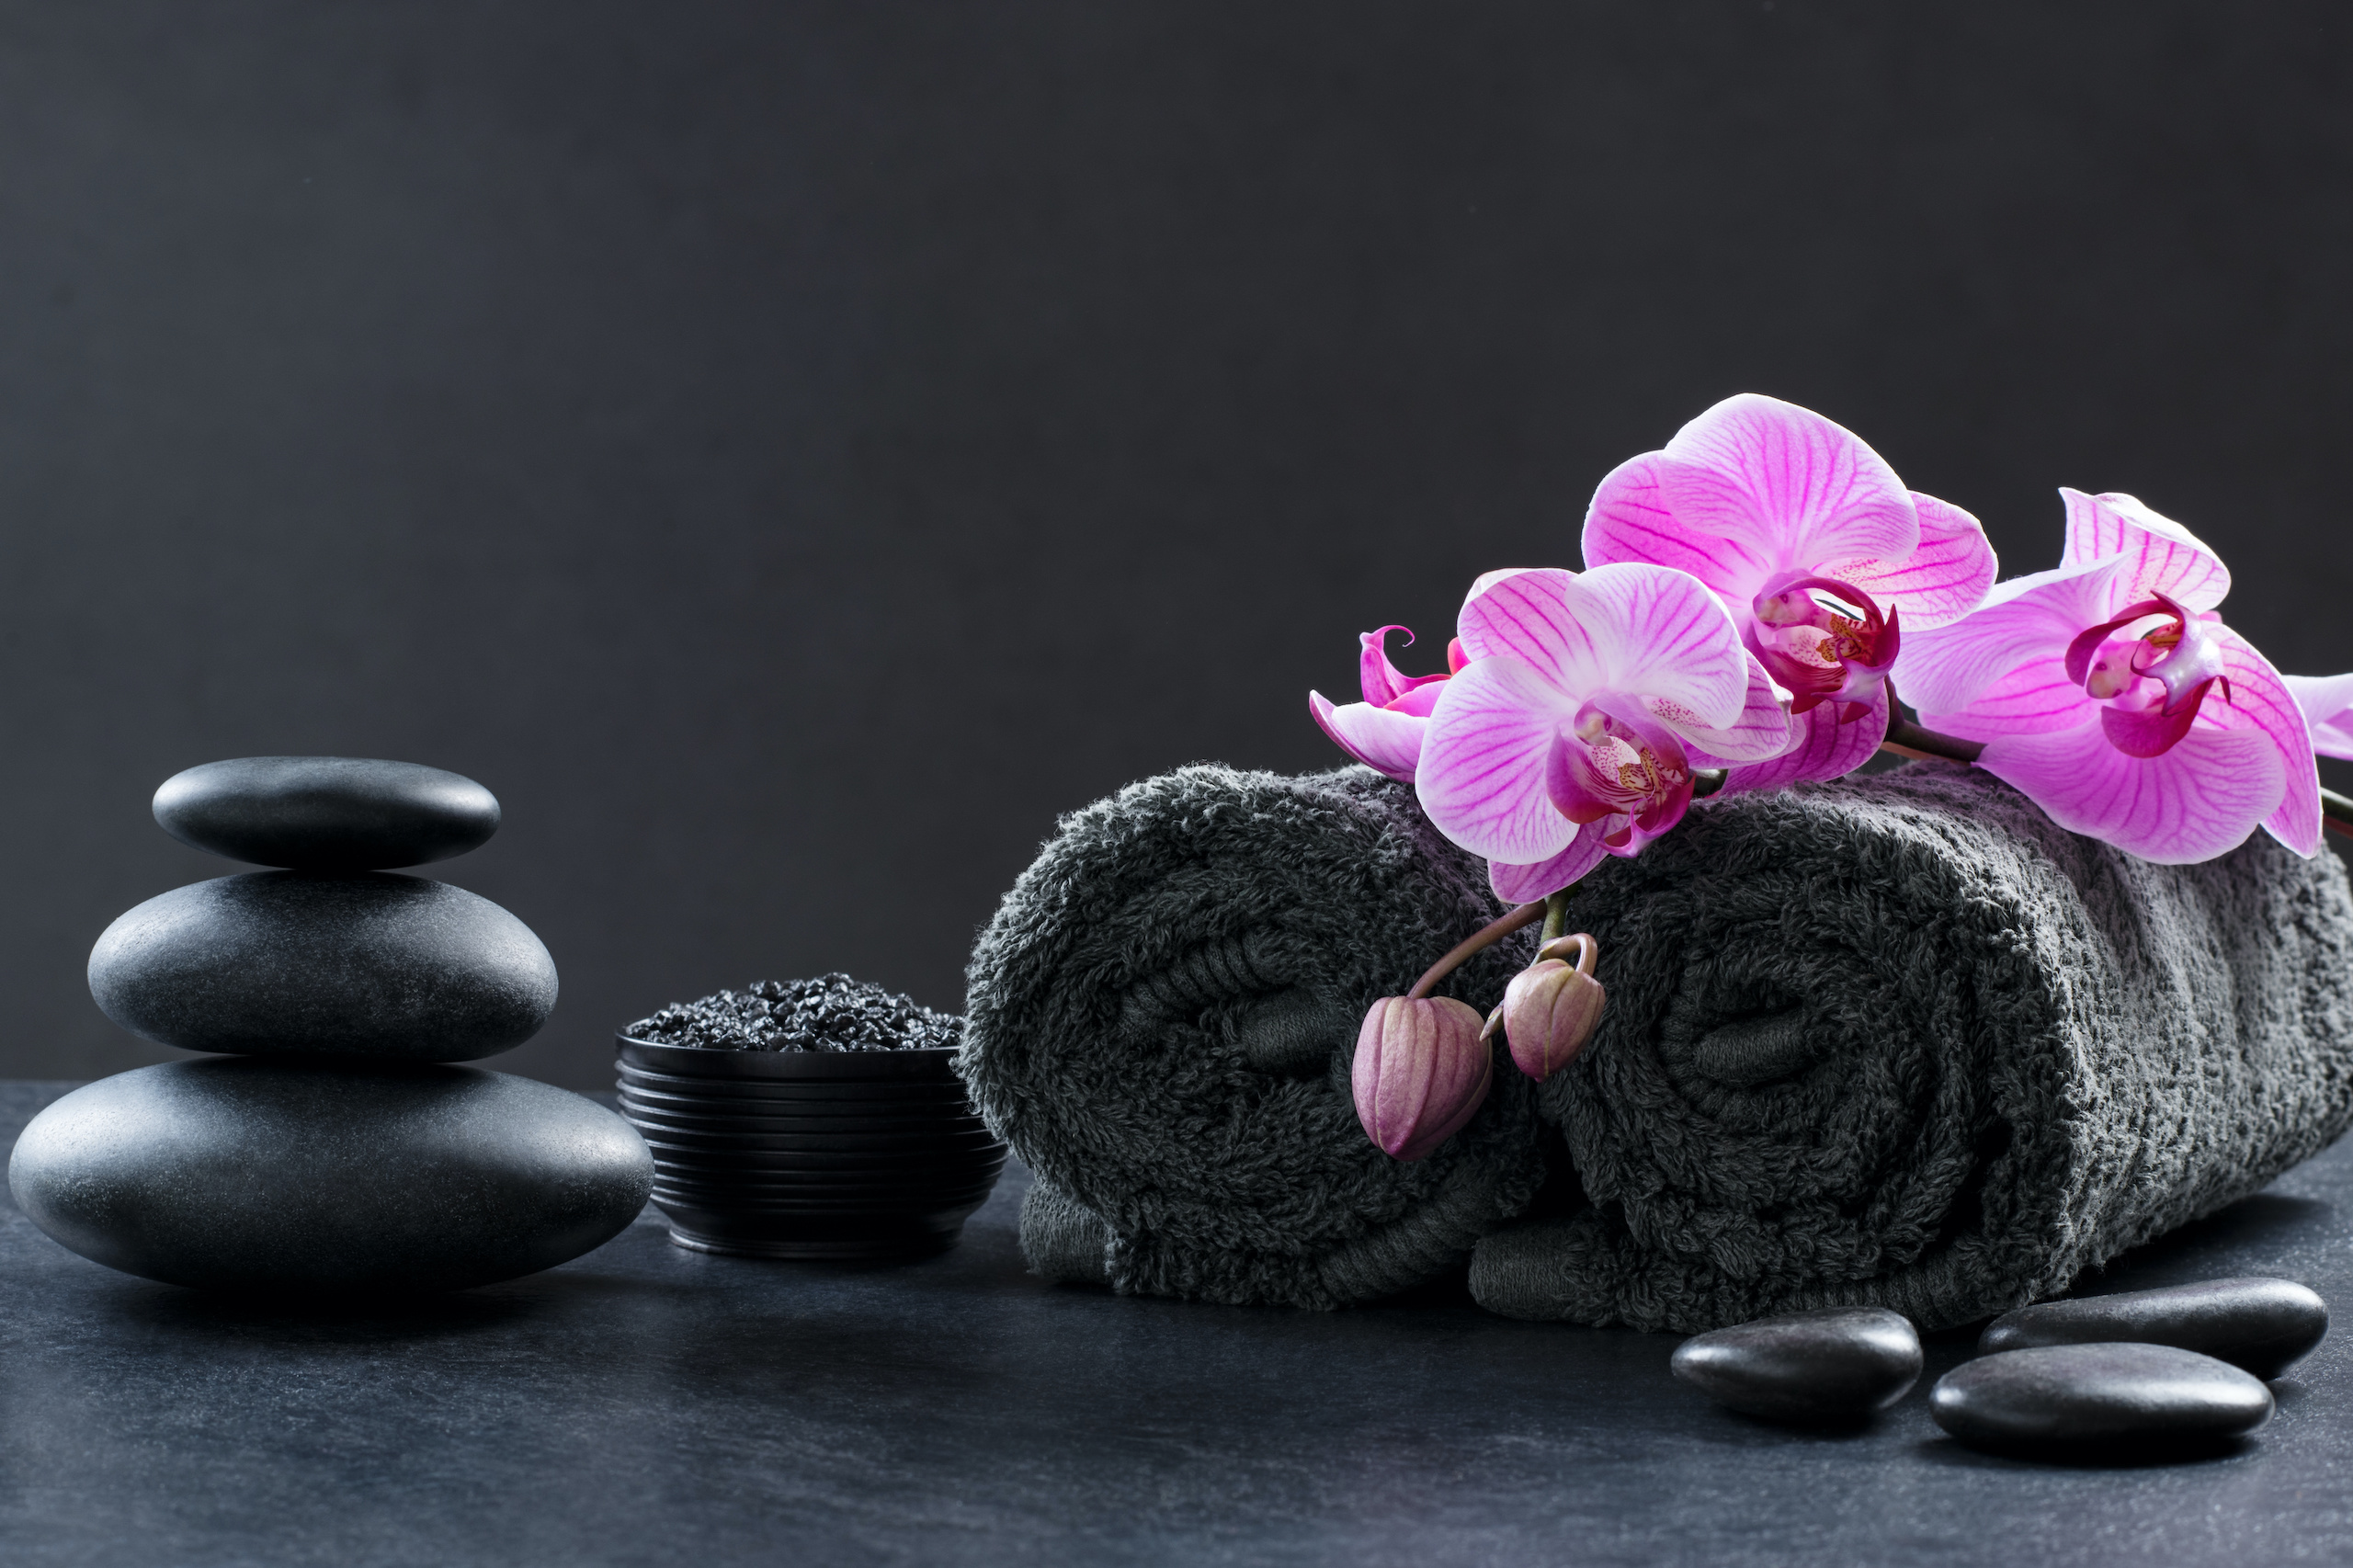 Black spa setting with grey towels, hot stones and beautiful orchids. Spa and wellness background with stack of hot stones with pink flowers on blackboard. Luxury spa composition and relax concept.